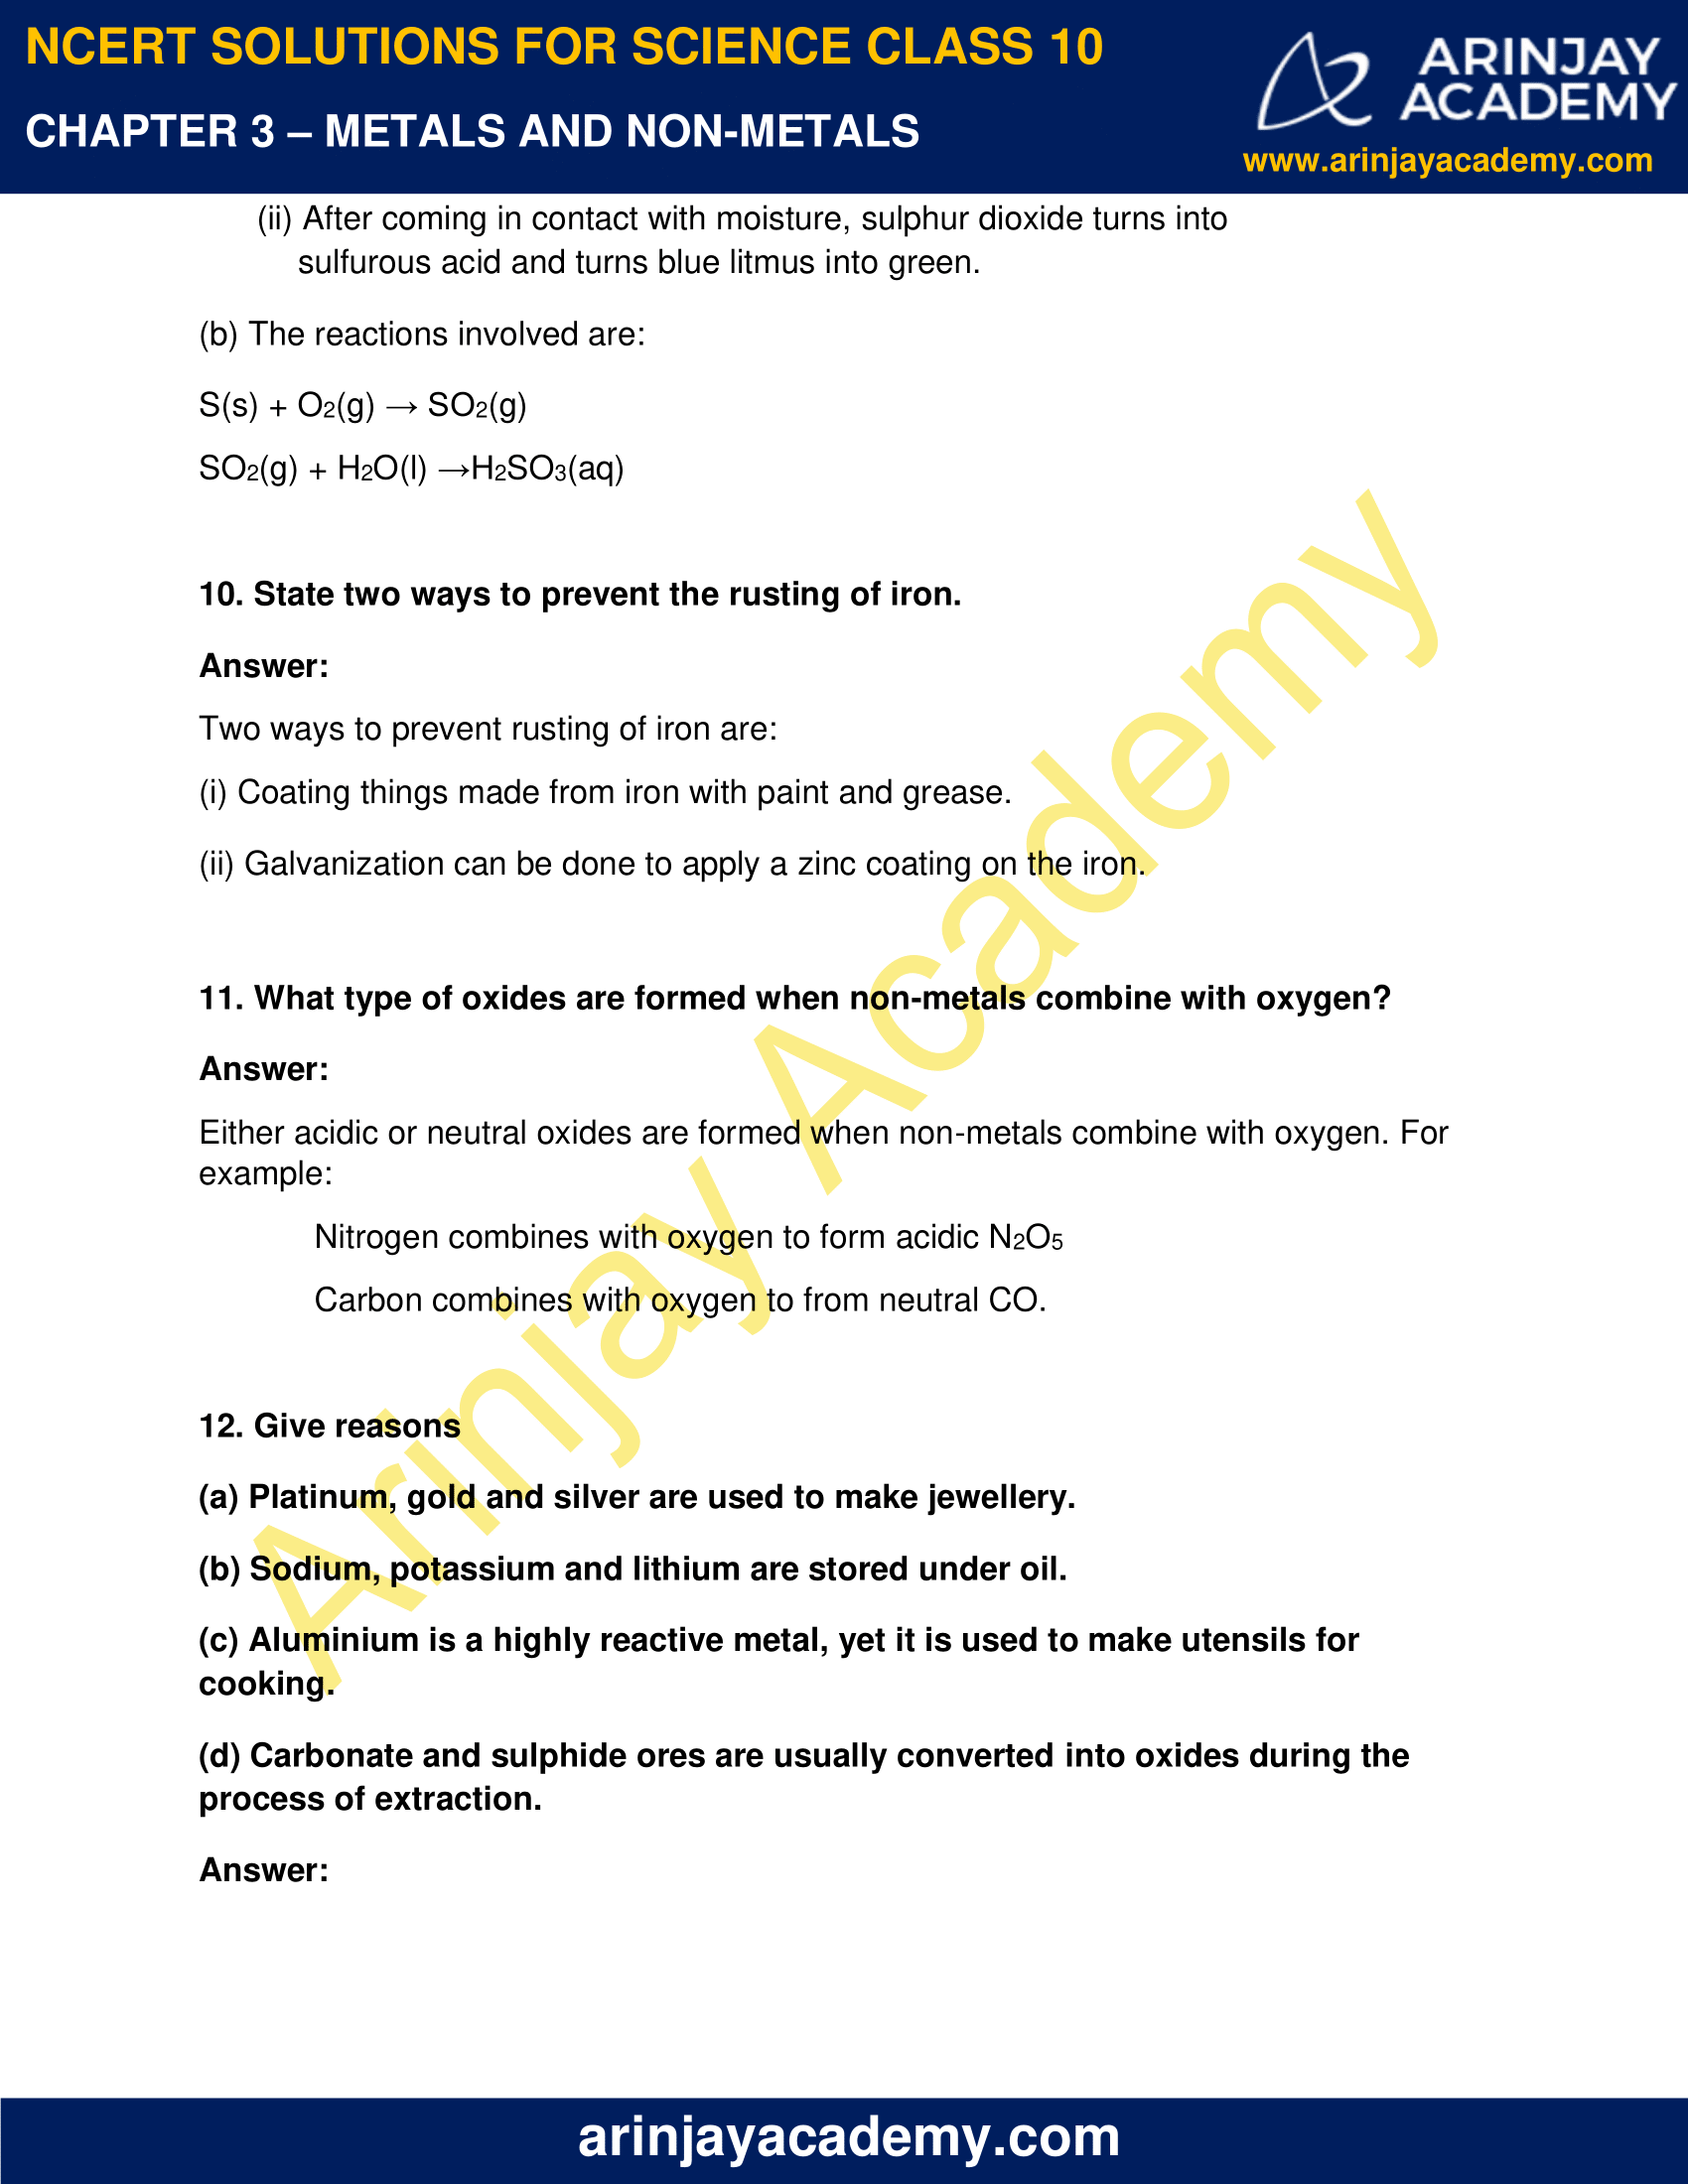 NCERT Solutions for Class 10 Science Chapter 3 image 10